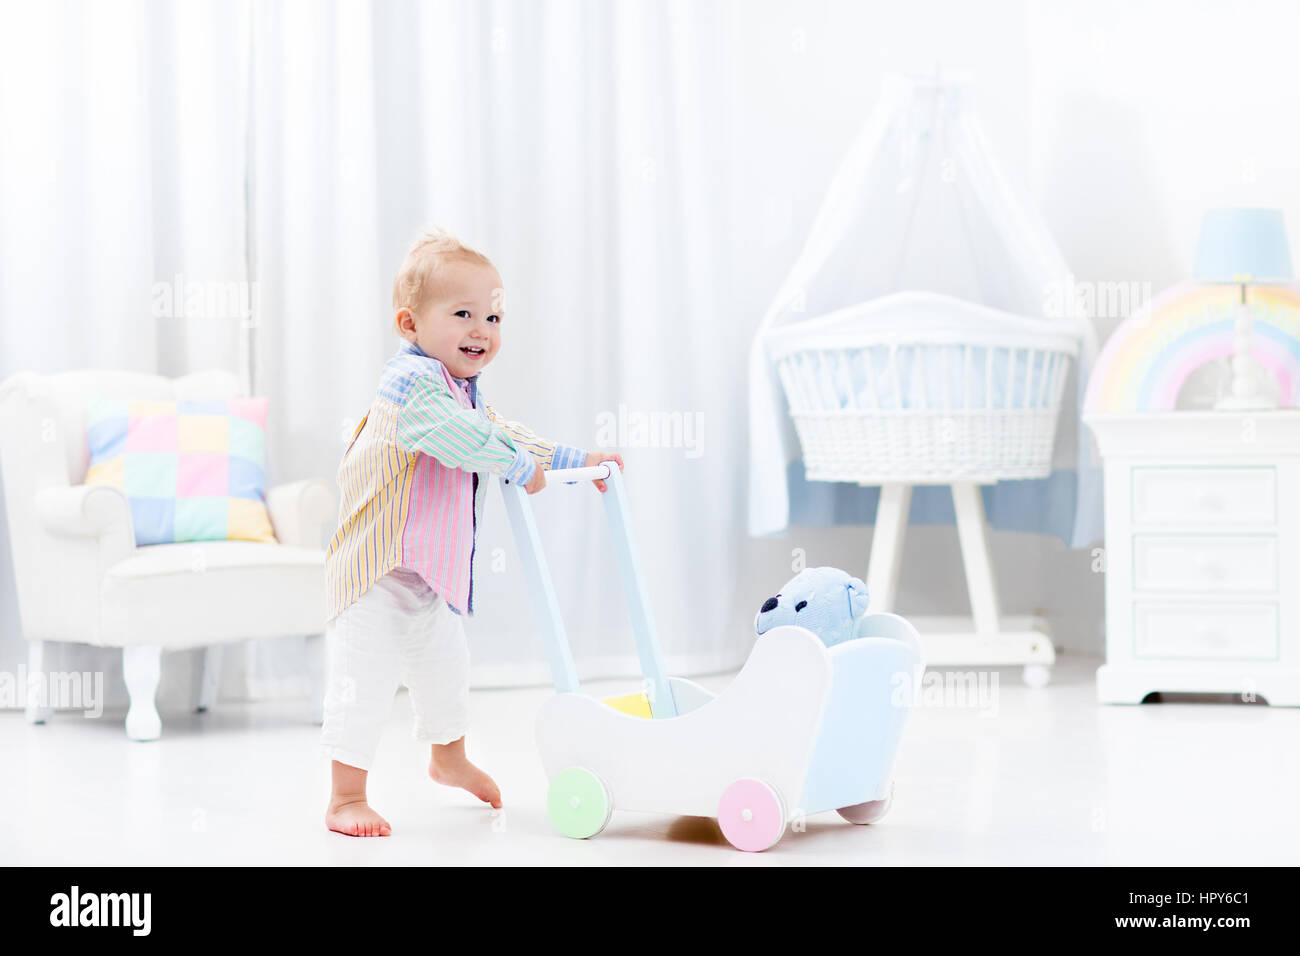 Baby Boy Learning To Walk With Wooden Push Walker In White Bedroom